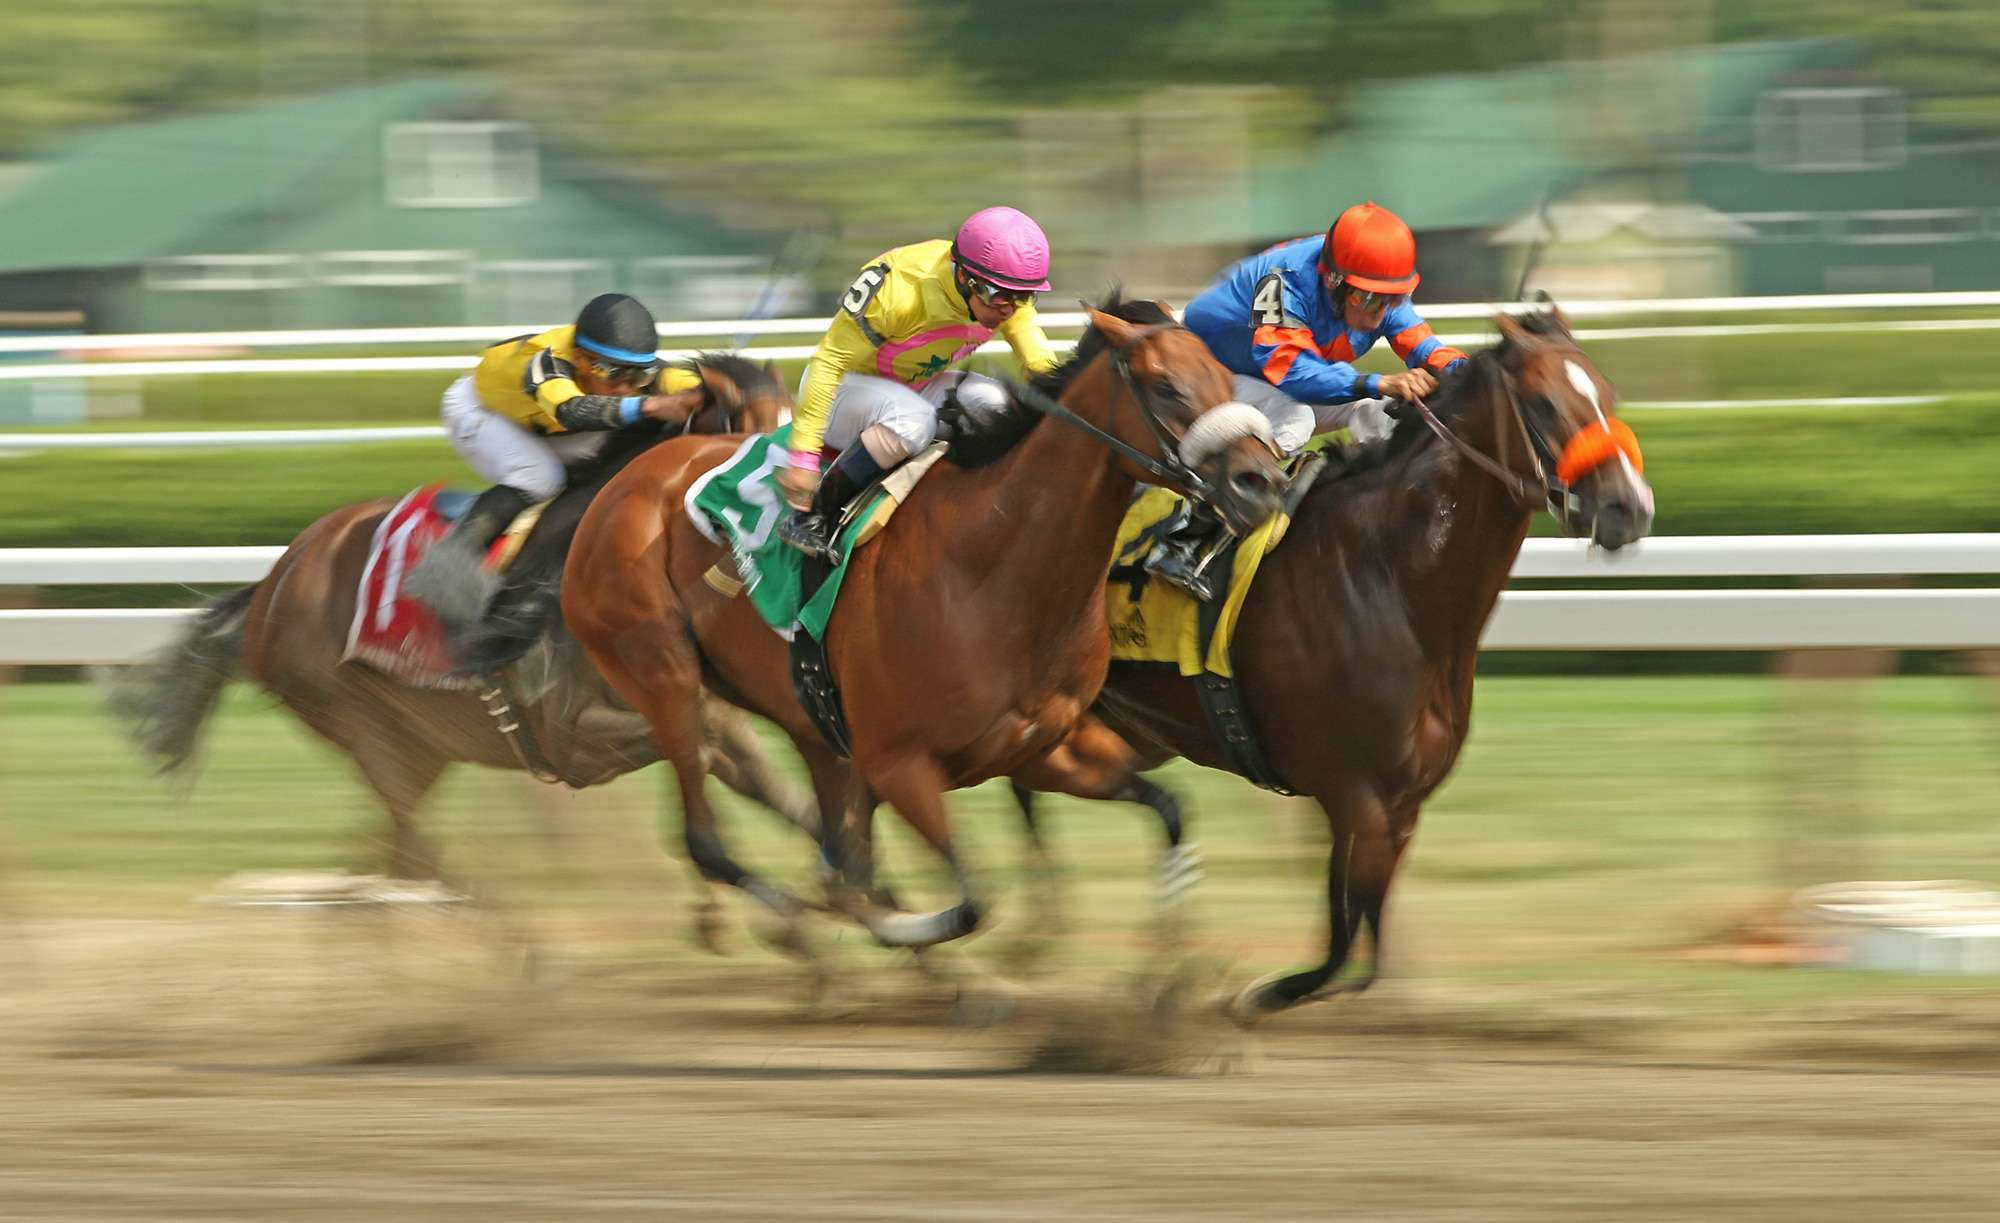 Horse betting sites in the usa btts betting stats for nfl